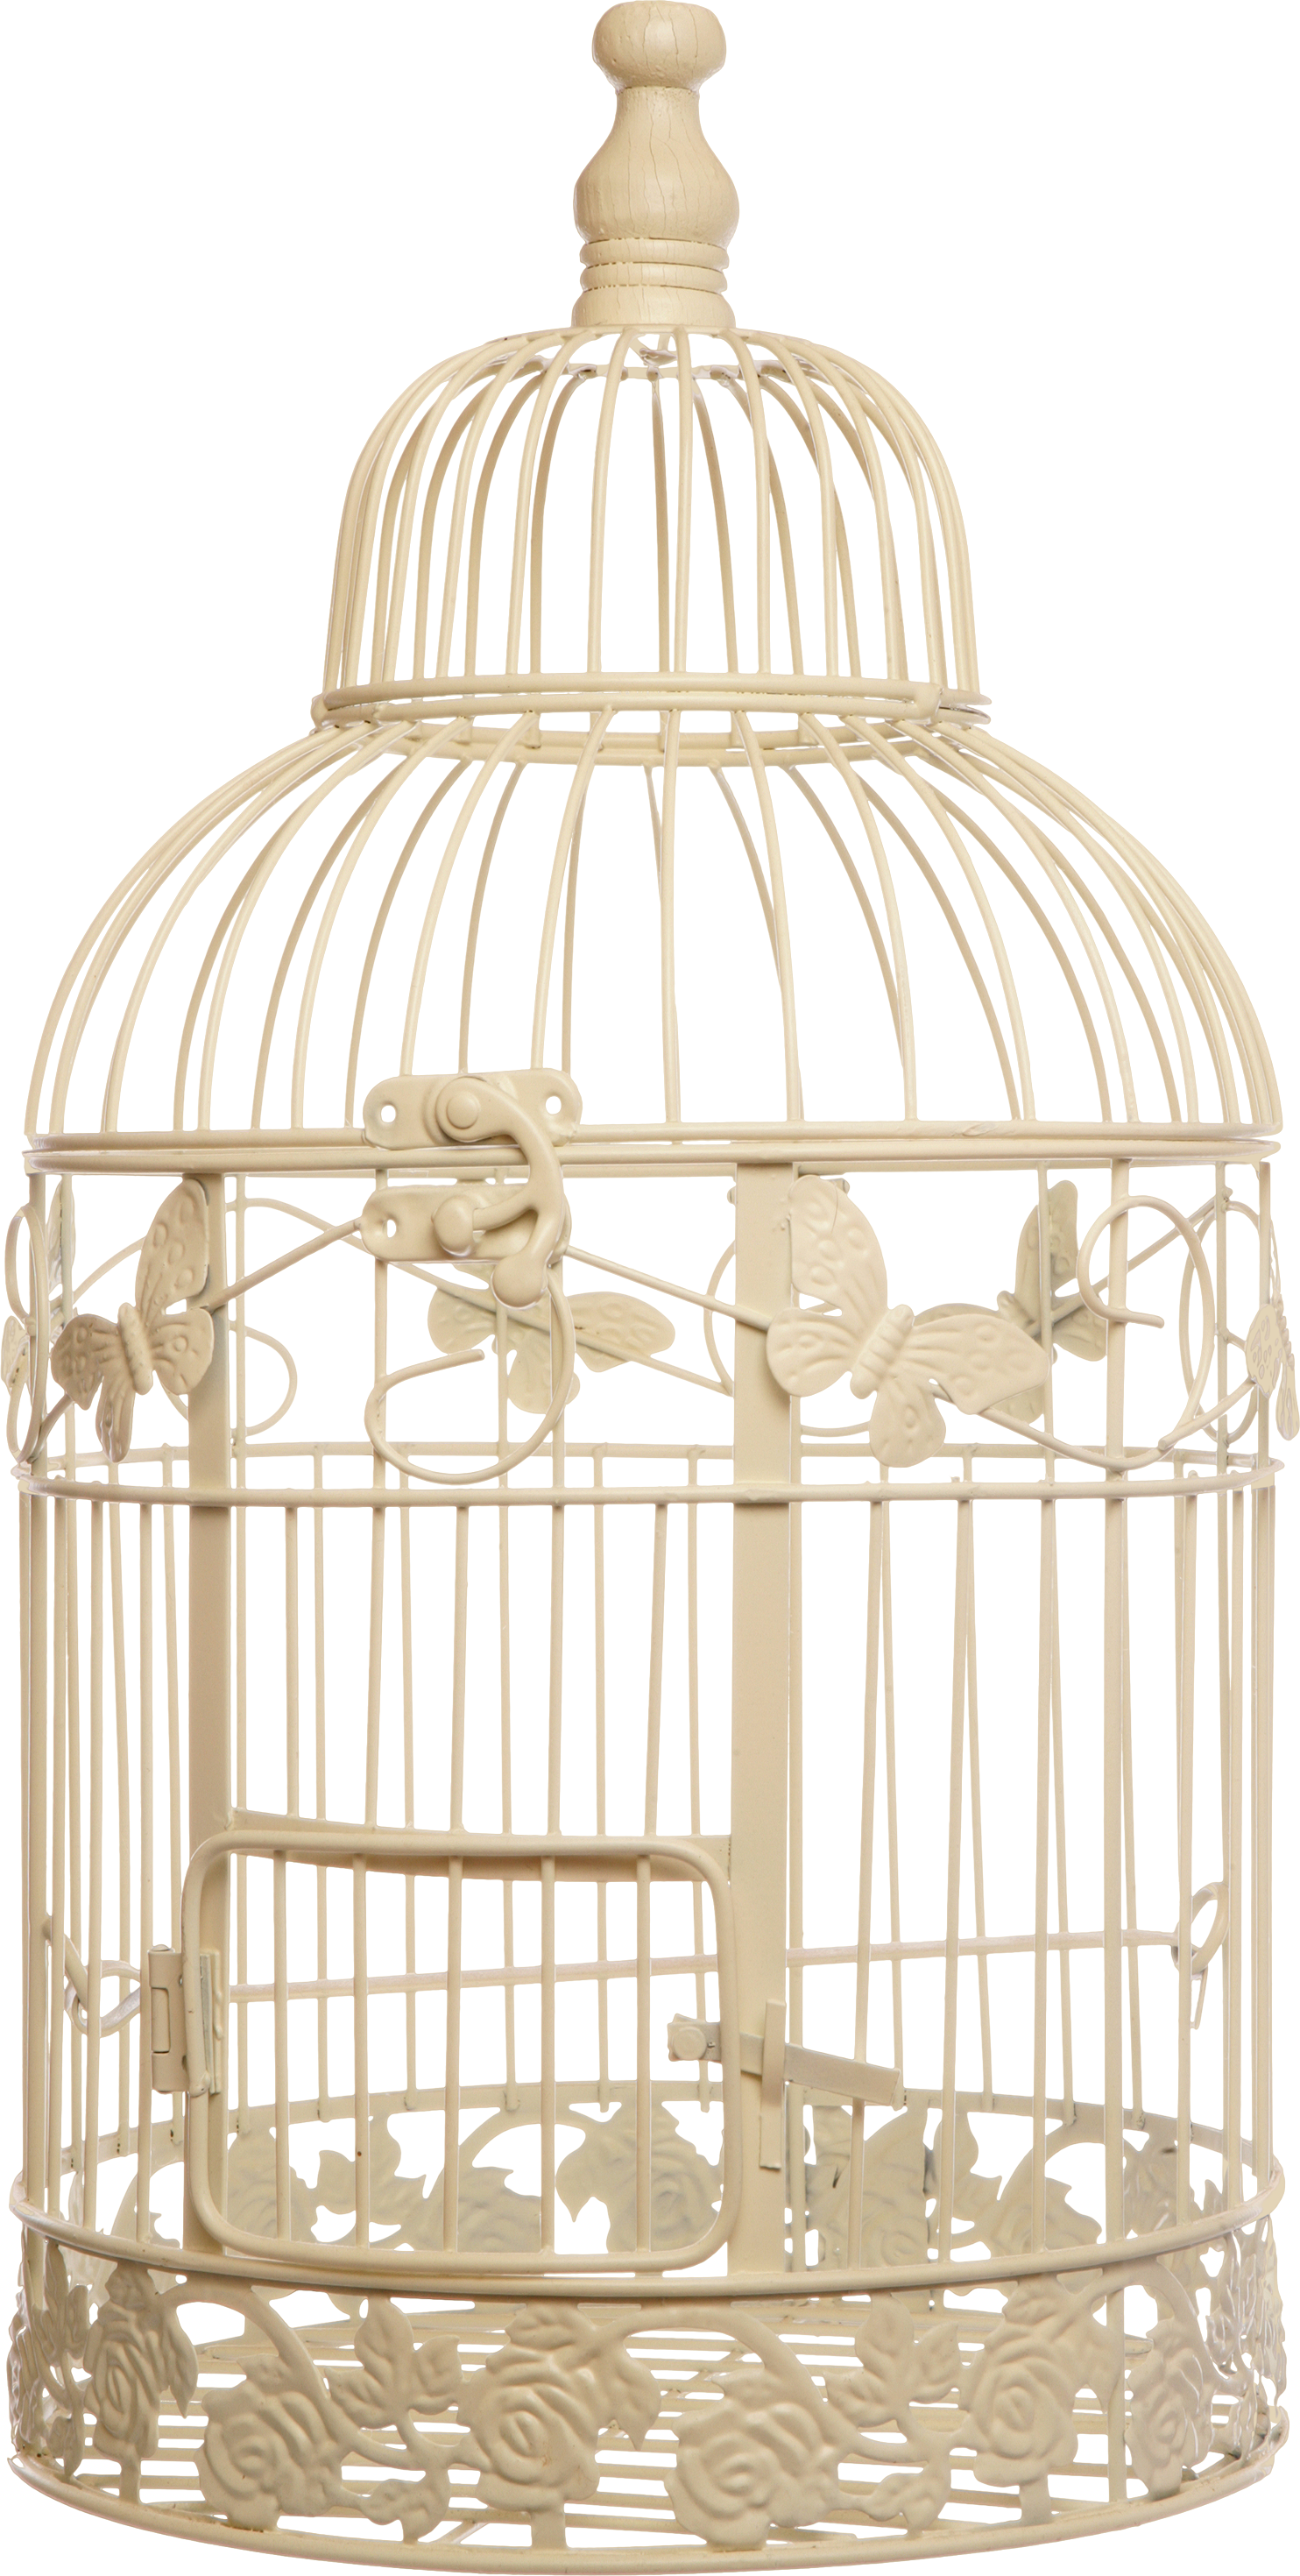 White Bird Cage Png Image Vintage Shabby Chic Vintage Bird Cage Bird Cage